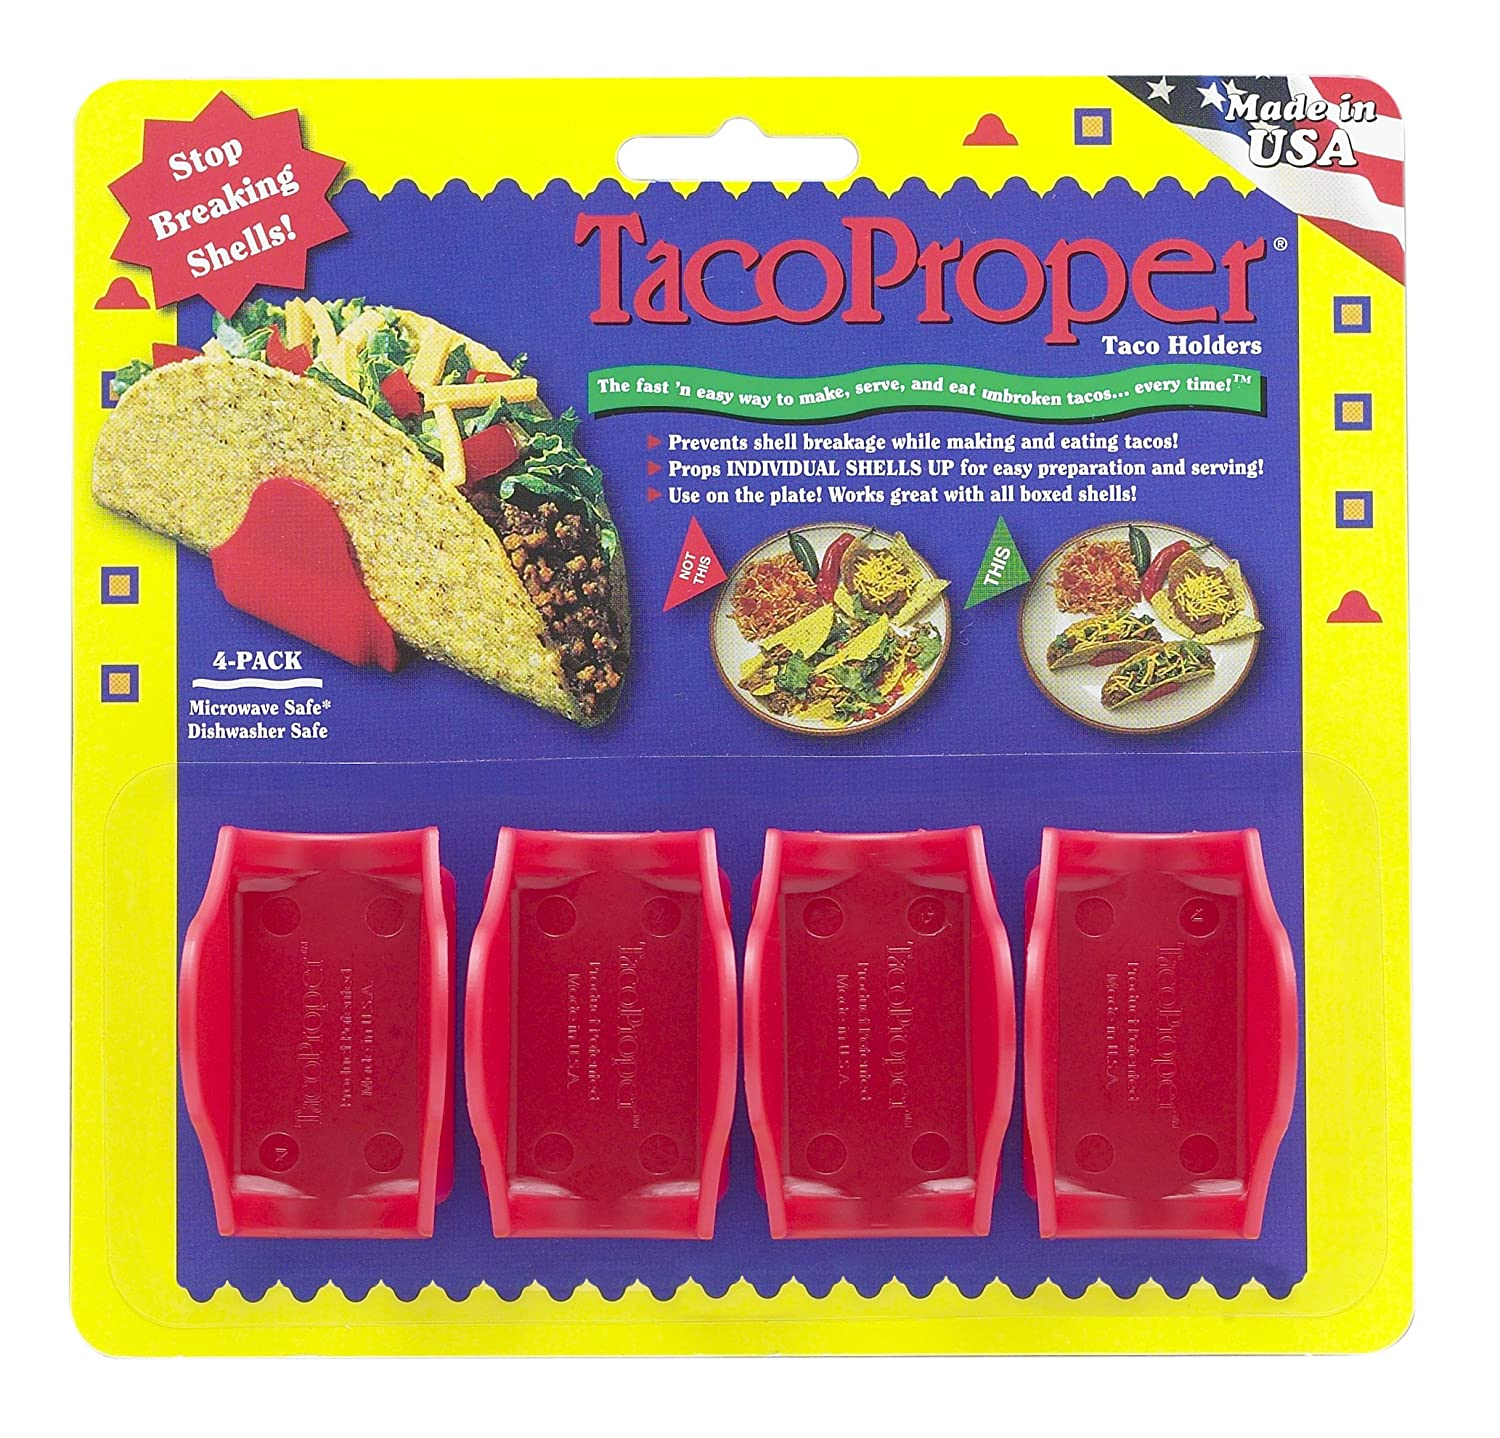 The TacoProper FiestaPak, Set of 12 Taco Holders, Made in America Harold Import Company Inc. 11934PF R6012B-25_VCP